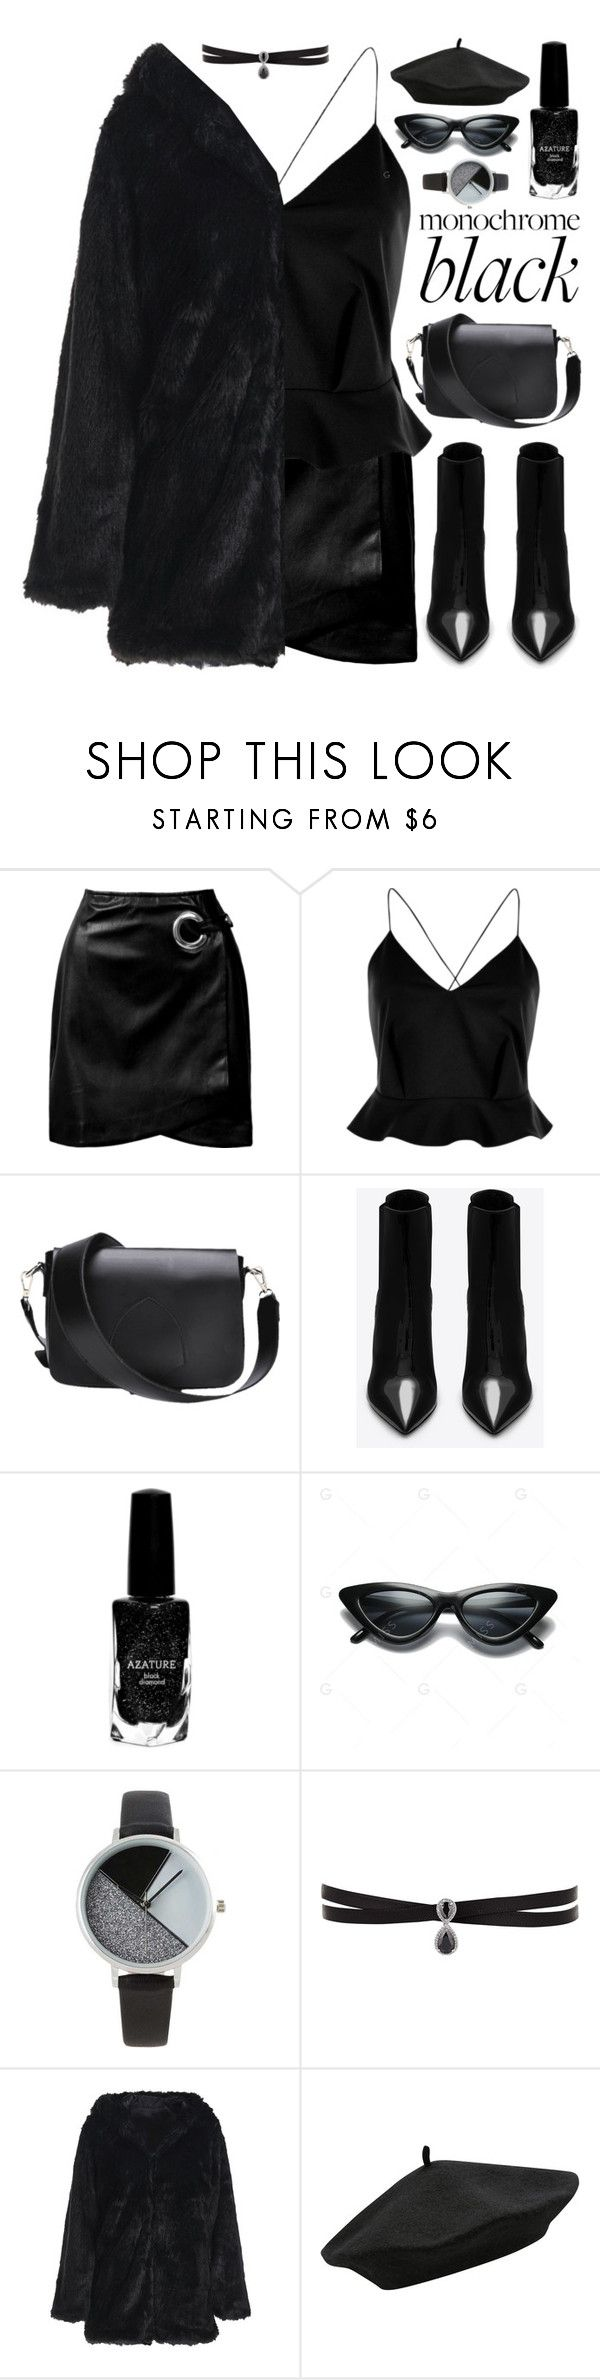 """M O N O C H R O M E : B L A C K"" by amethyst0818 ❤ liked on Polyvore featuring Sans Souci, River Island, Yves Saint Laurent, Azature, BKE, Fallon and M&Co"